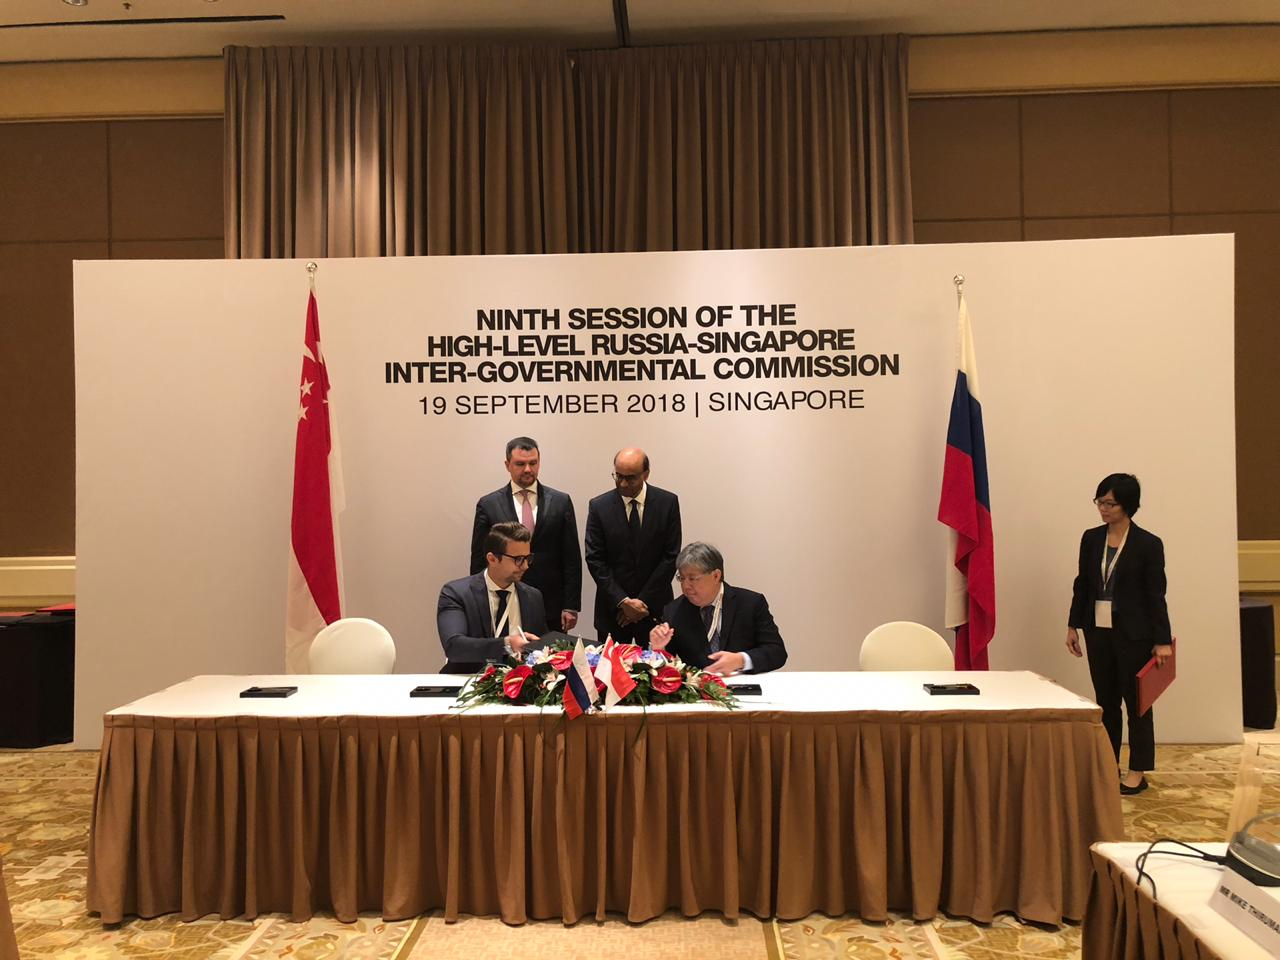 Rusatom Healthcare and Asian American Medical Group sign MoU to Develop Nuclear Medical Centre in Johor Bahru, Malaysia